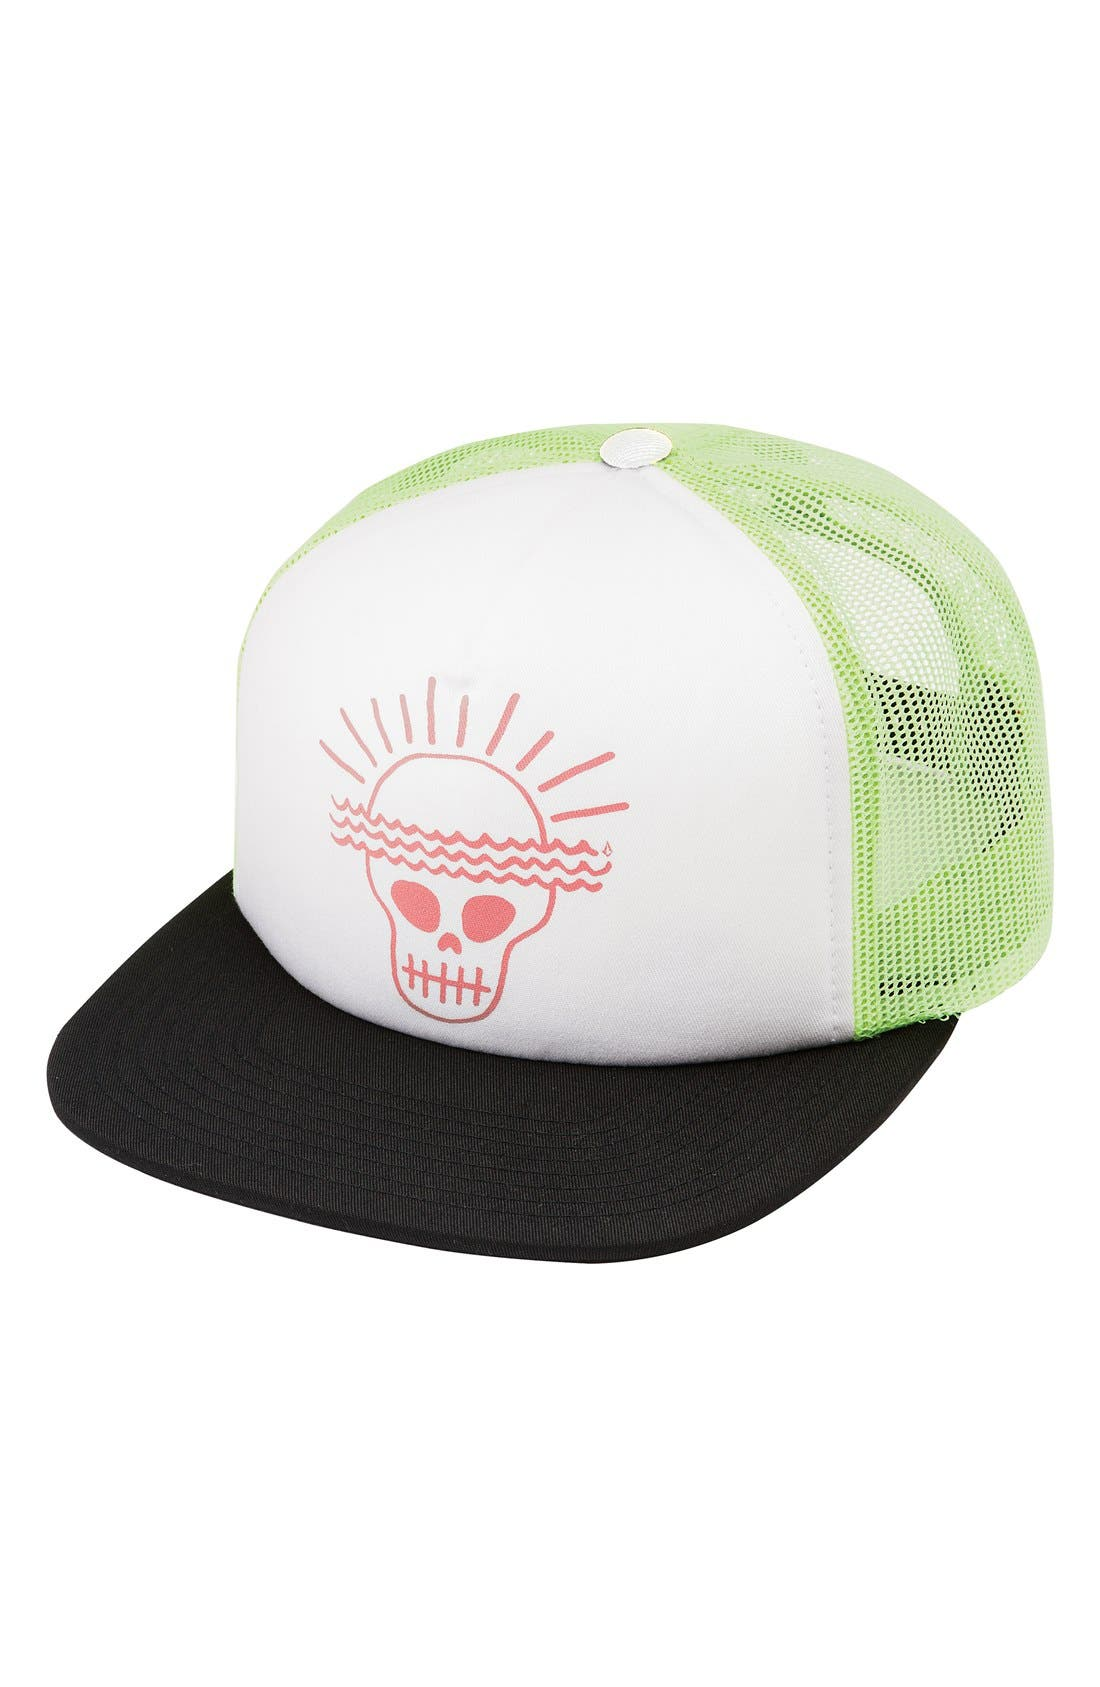 Main Image - Volcom 'Statement' Trucker Cap